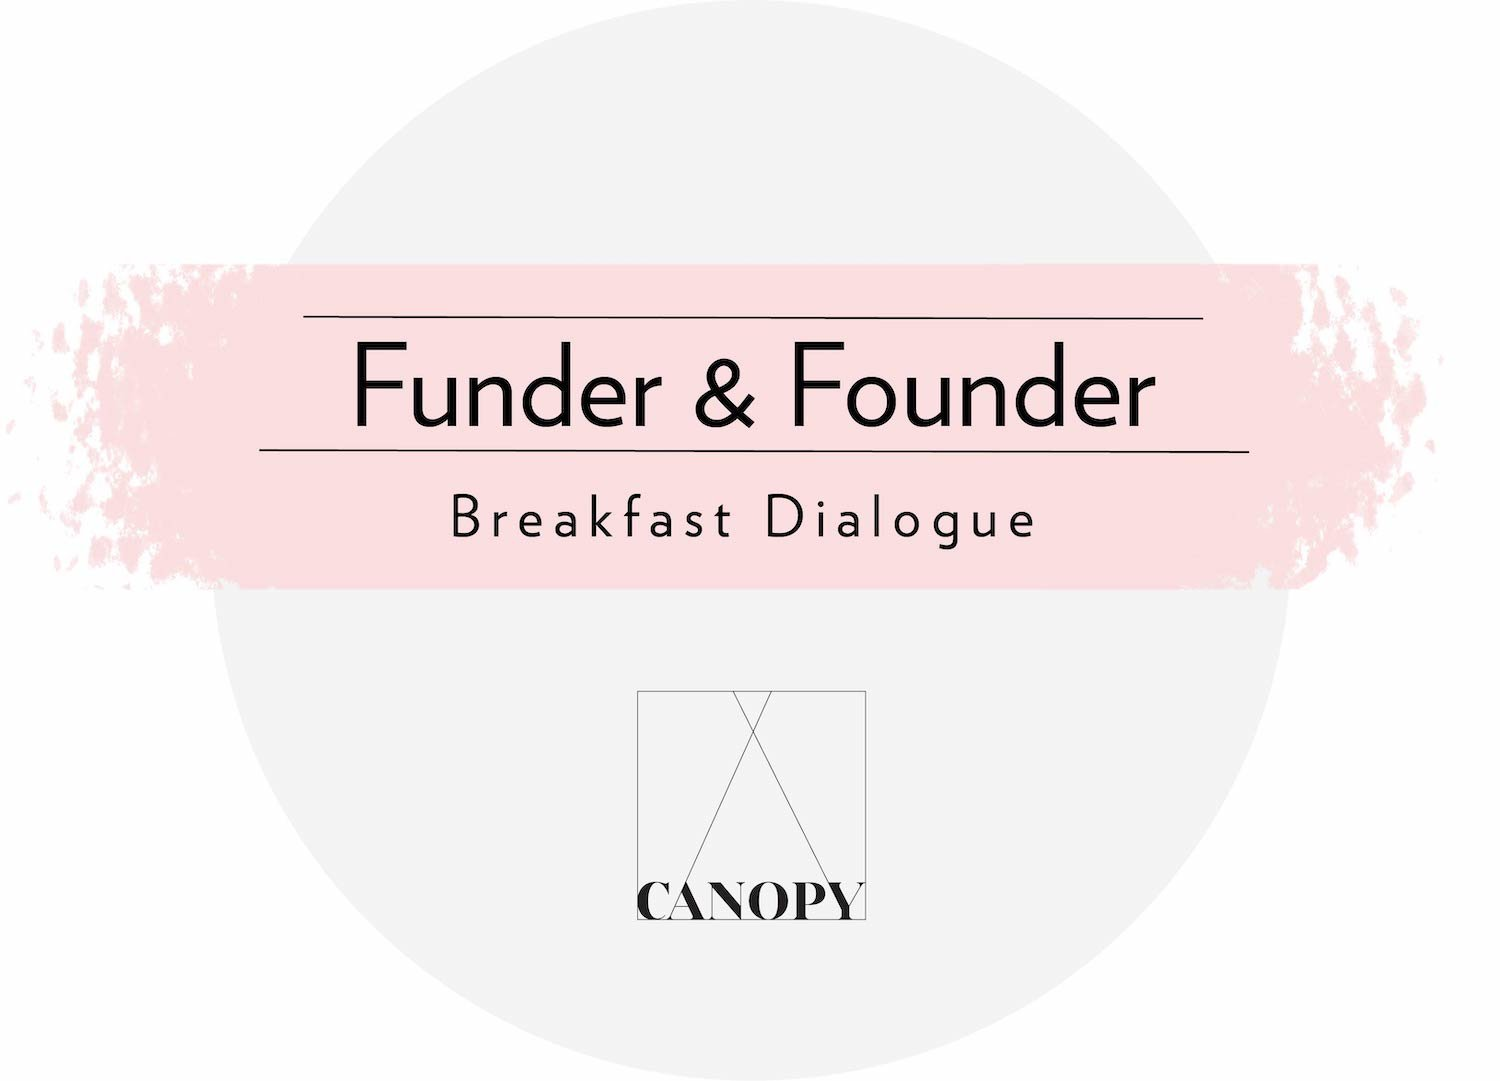 Funder & Founder Breakfast